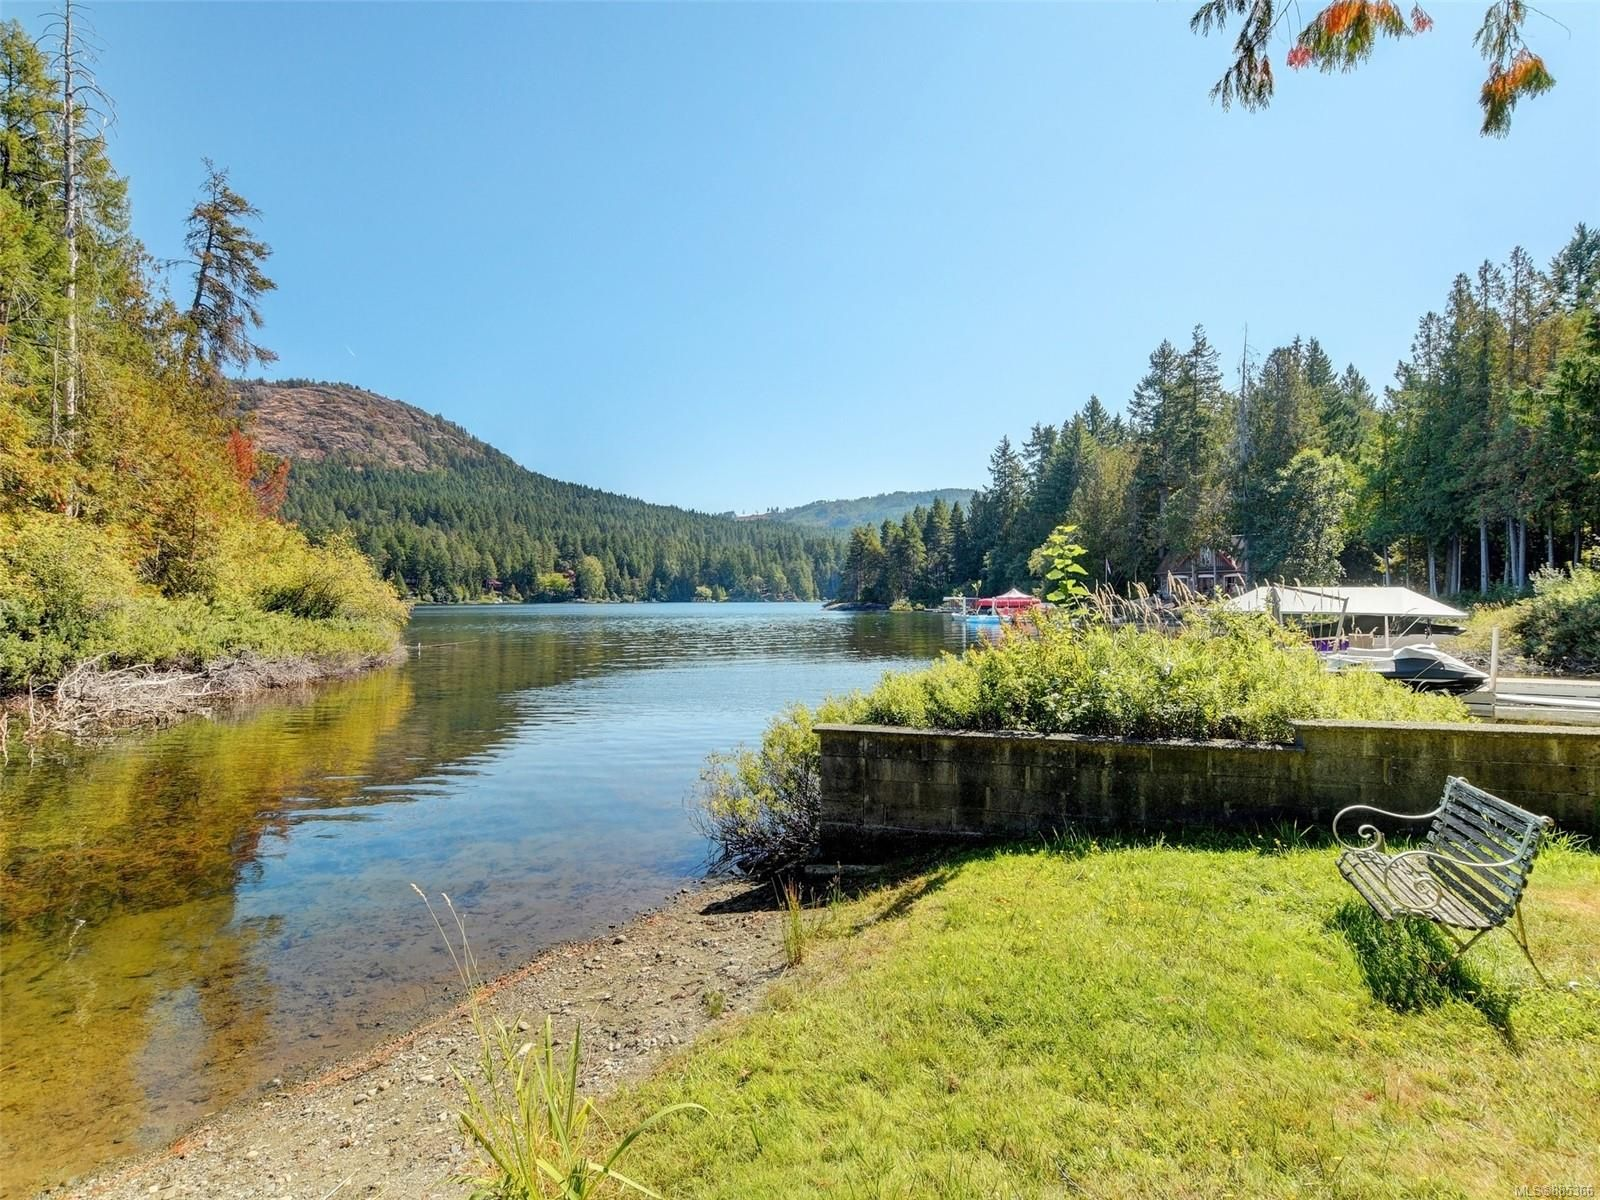 Main Photo: 2055 SWEET GALE Pl in : ML Shawnigan Land for sale (Malahat & Area)  : MLS®# 885366